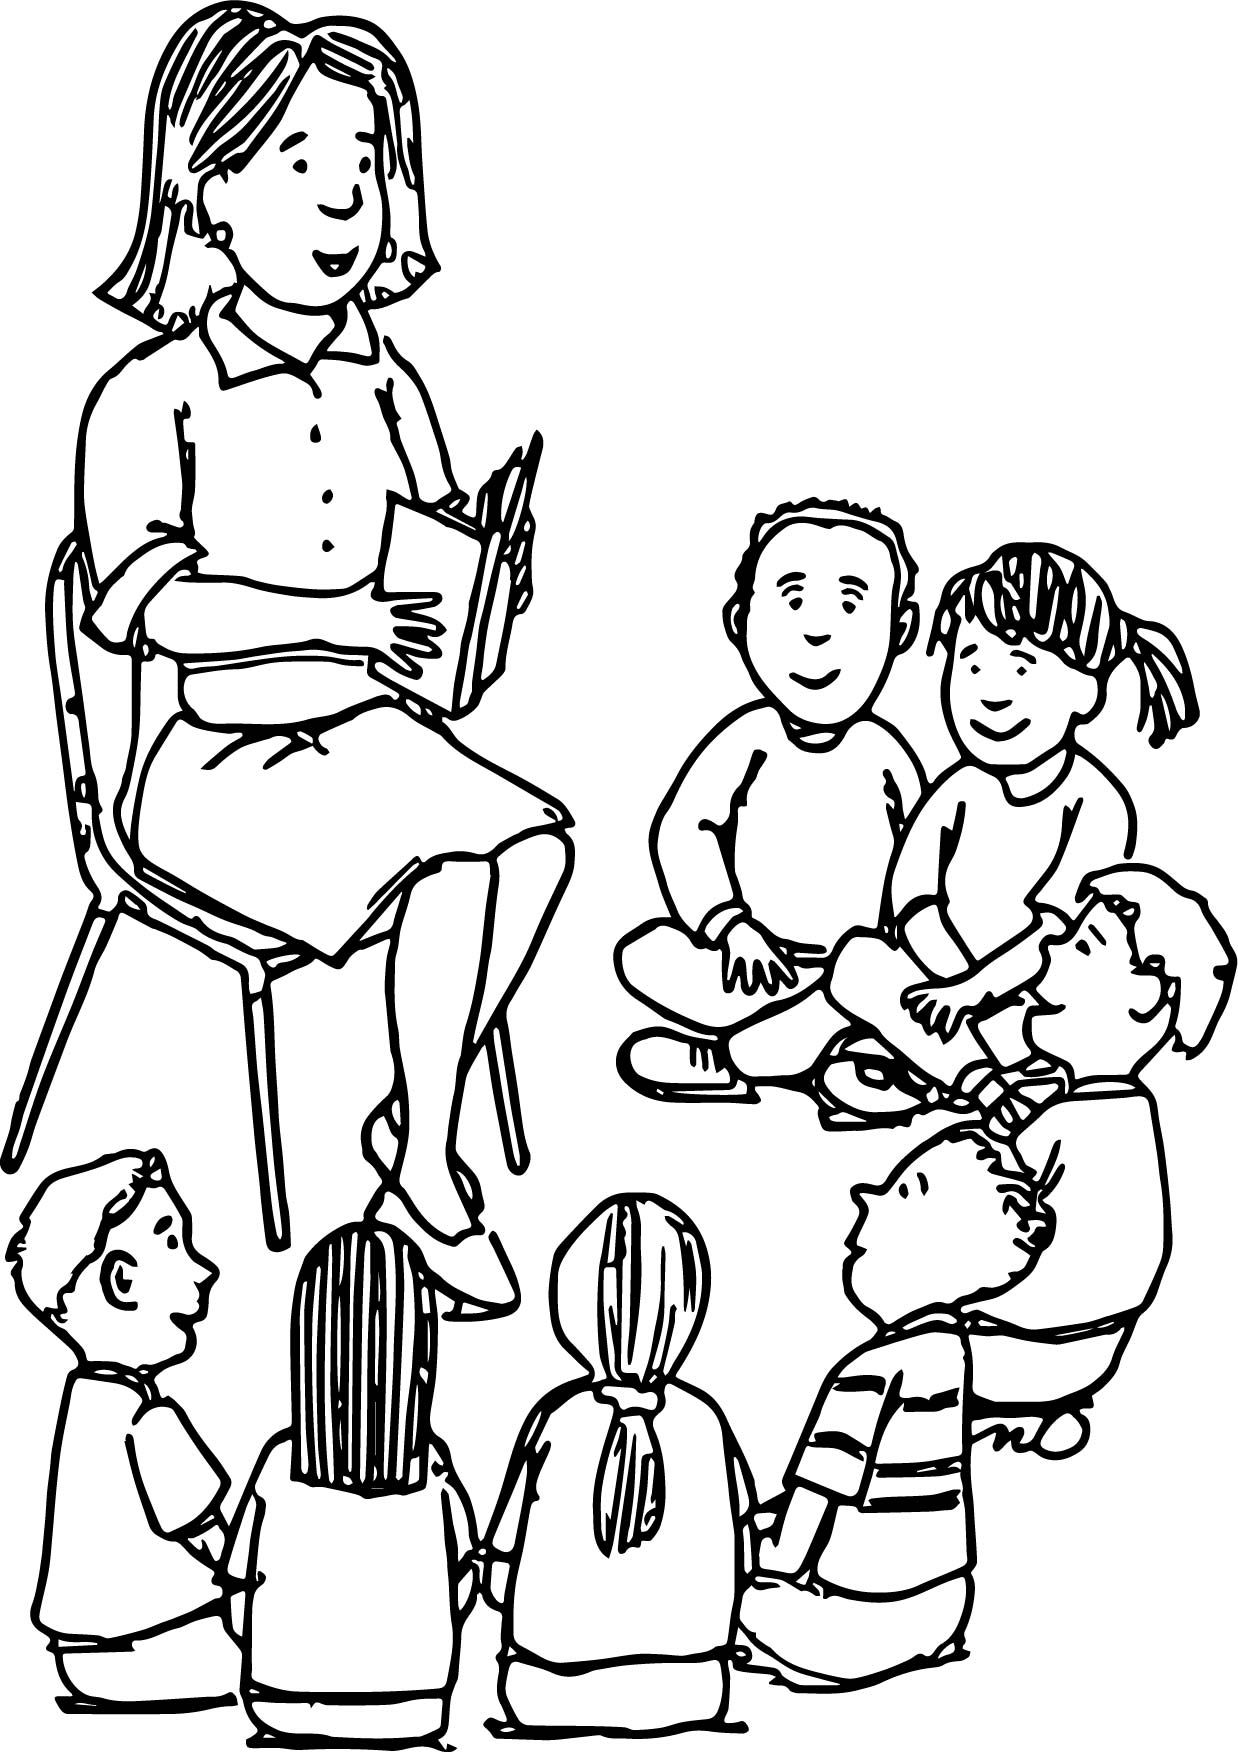 Awesome Reading Teacher All Student Coloring Page